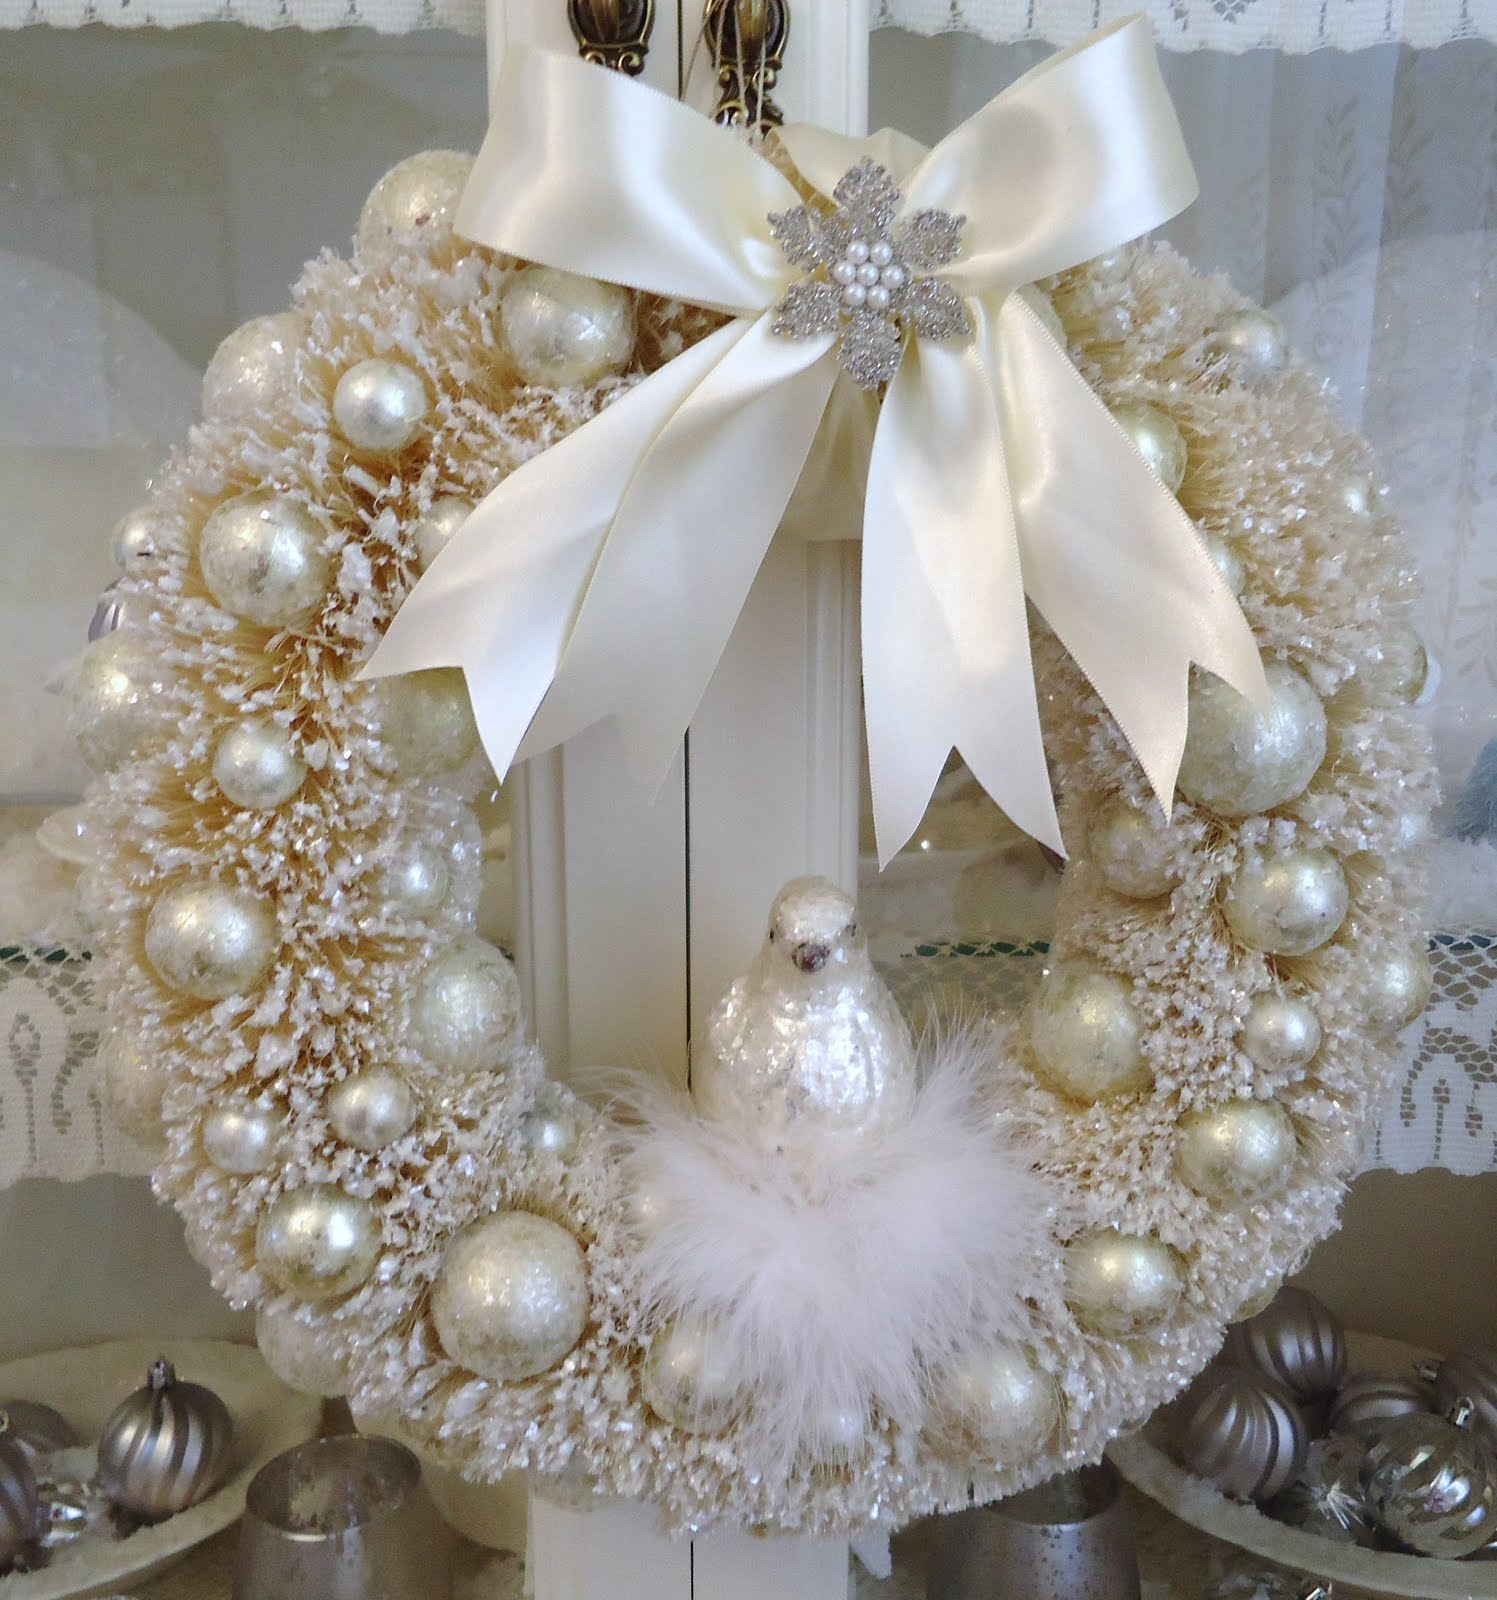 Pearl Garland For Christmas Tree: Tammy's Heart: More Christmas Beauties